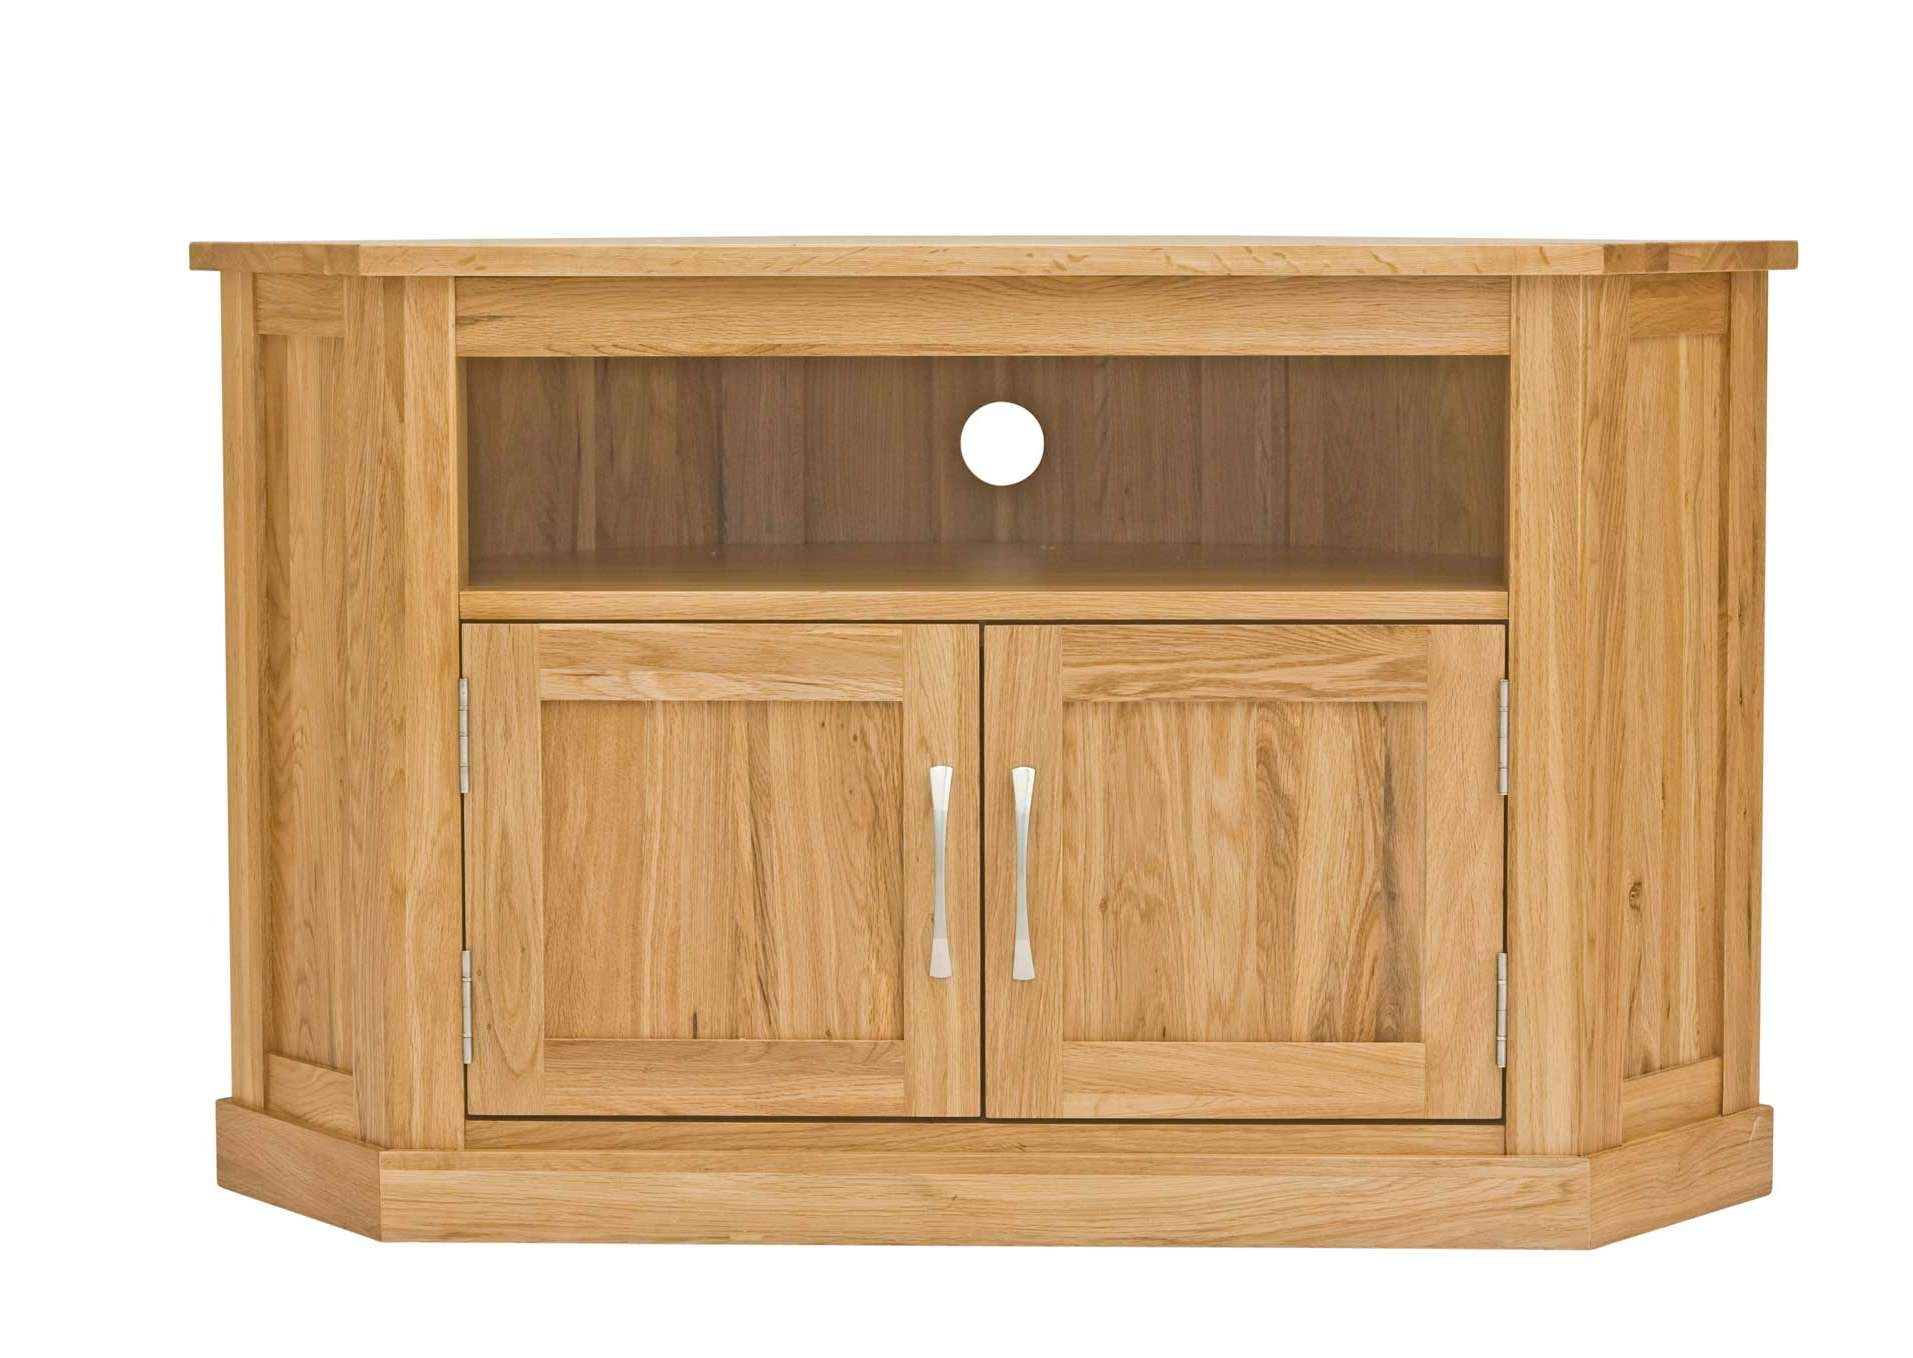 Classic Oak Corner Television Cabinet | Hampshire Furniture Inside Dark Wood Corner Tv Stands (View 2 of 15)